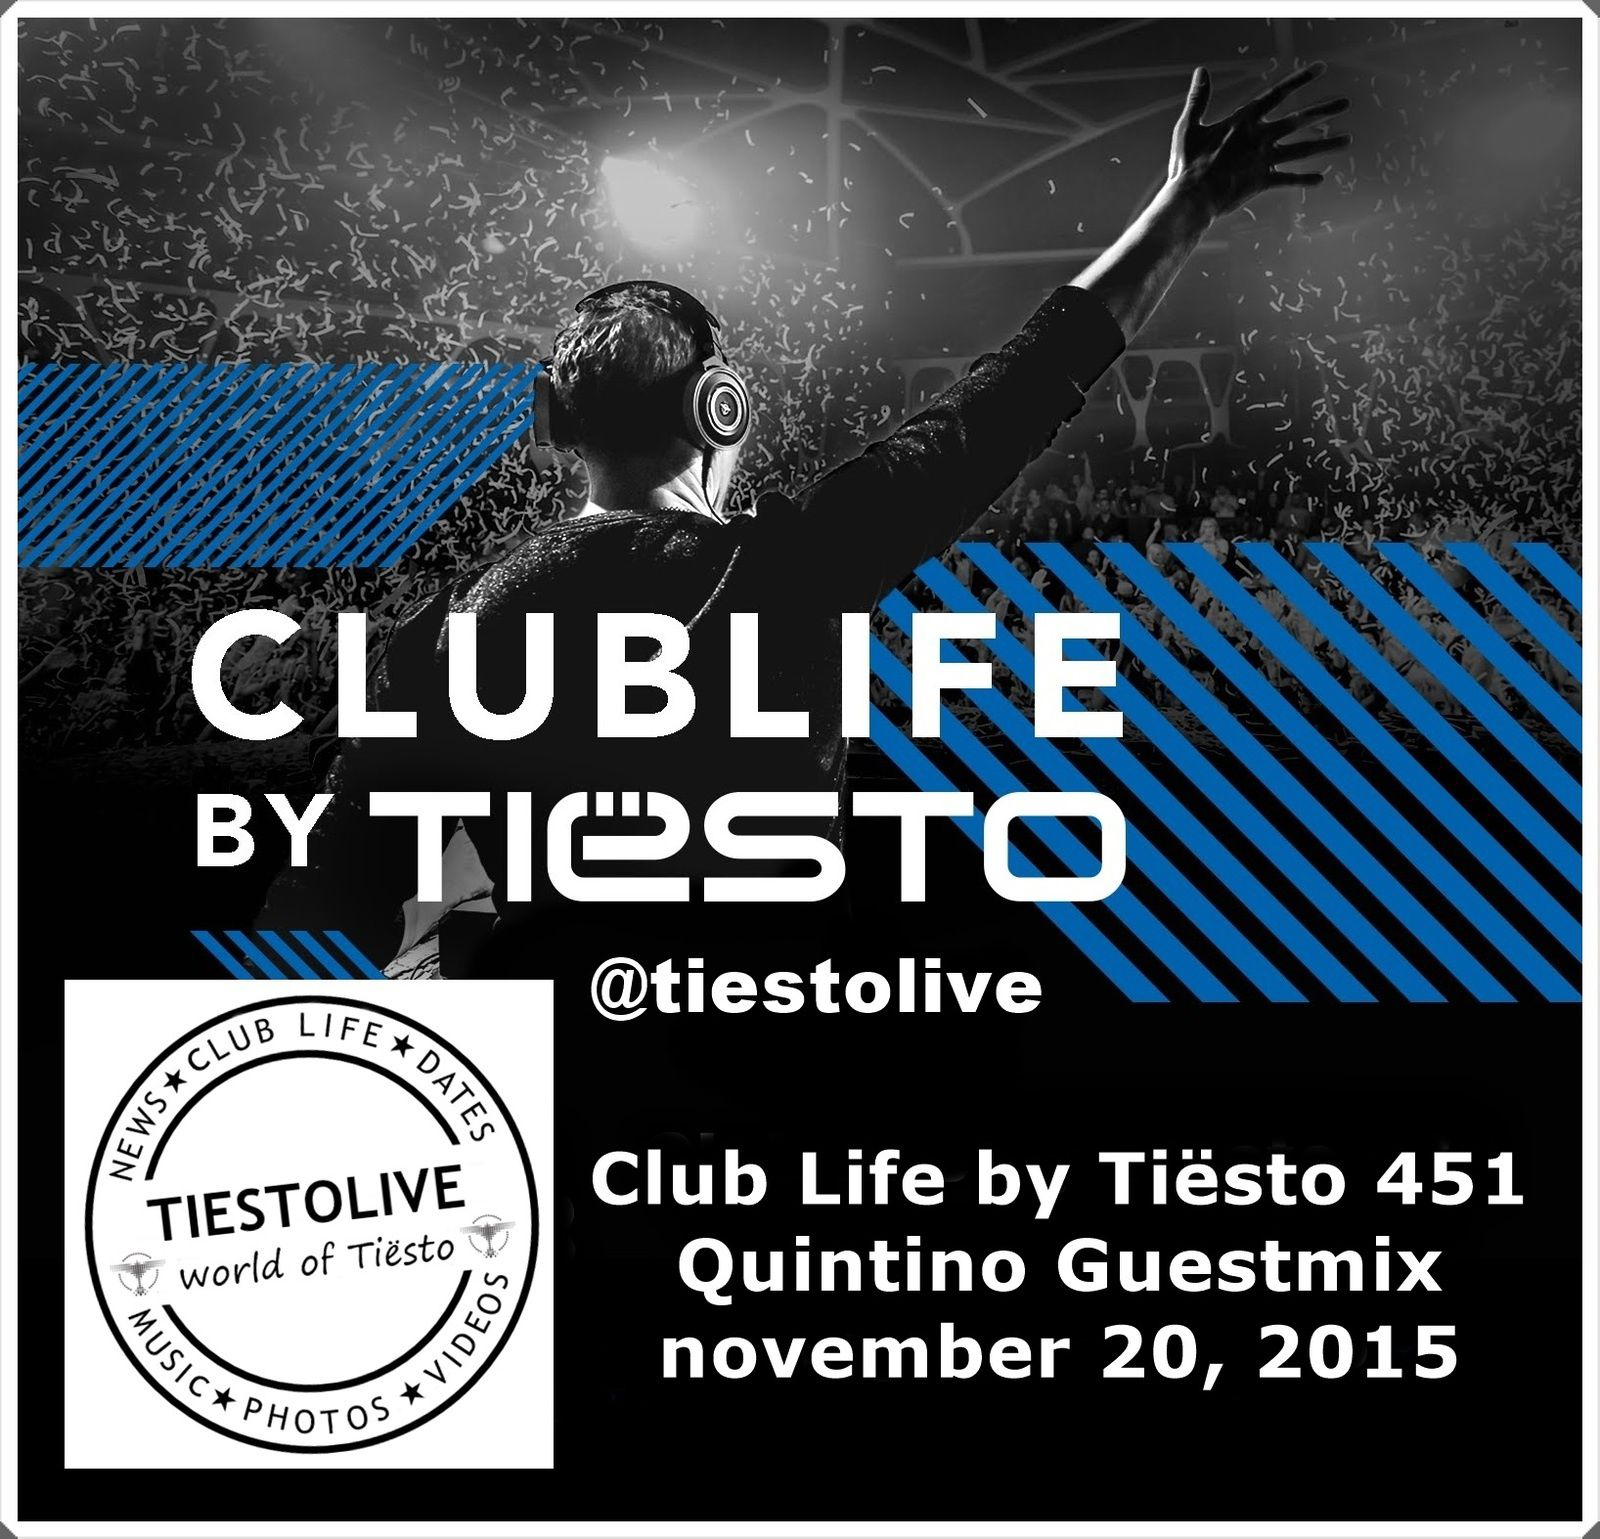 Club Life by Tiësto 451 Quintino Guestmix - november 20, 2015